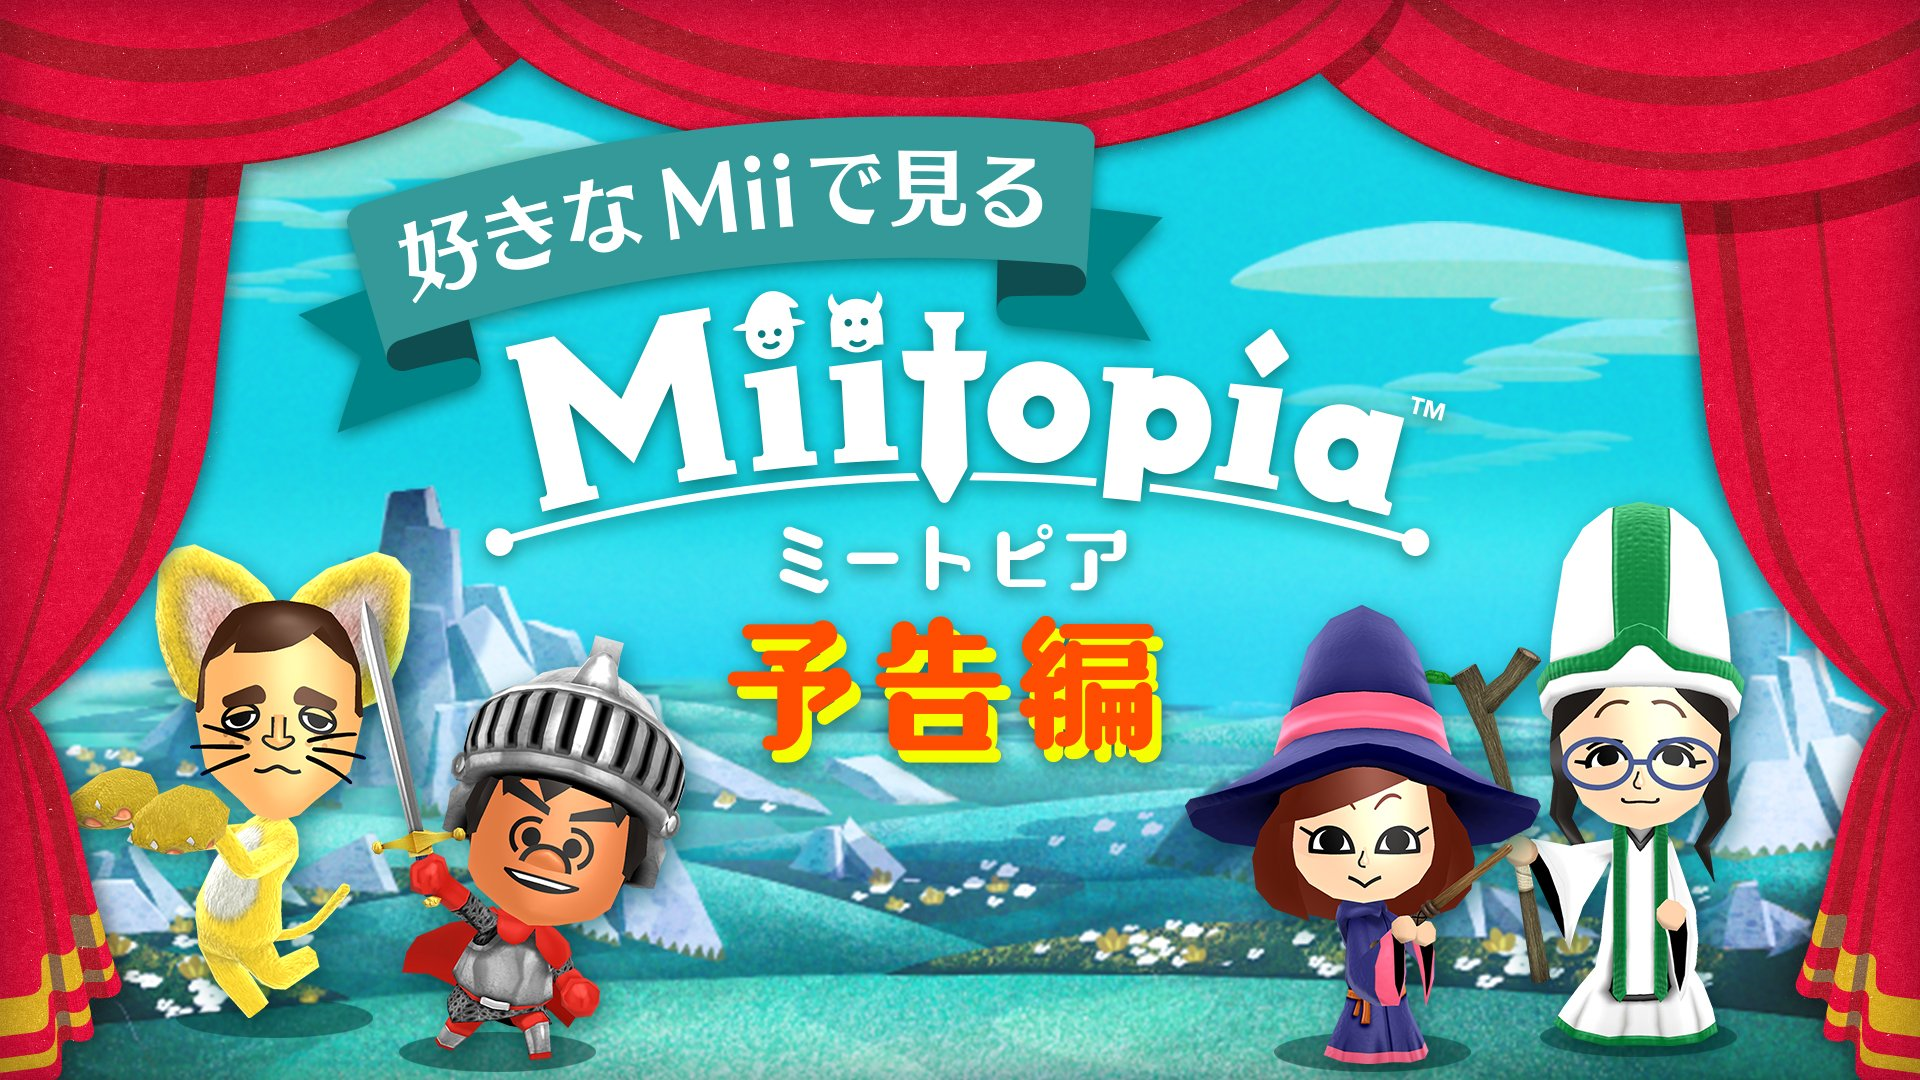 Should I Buy?: Miitopia